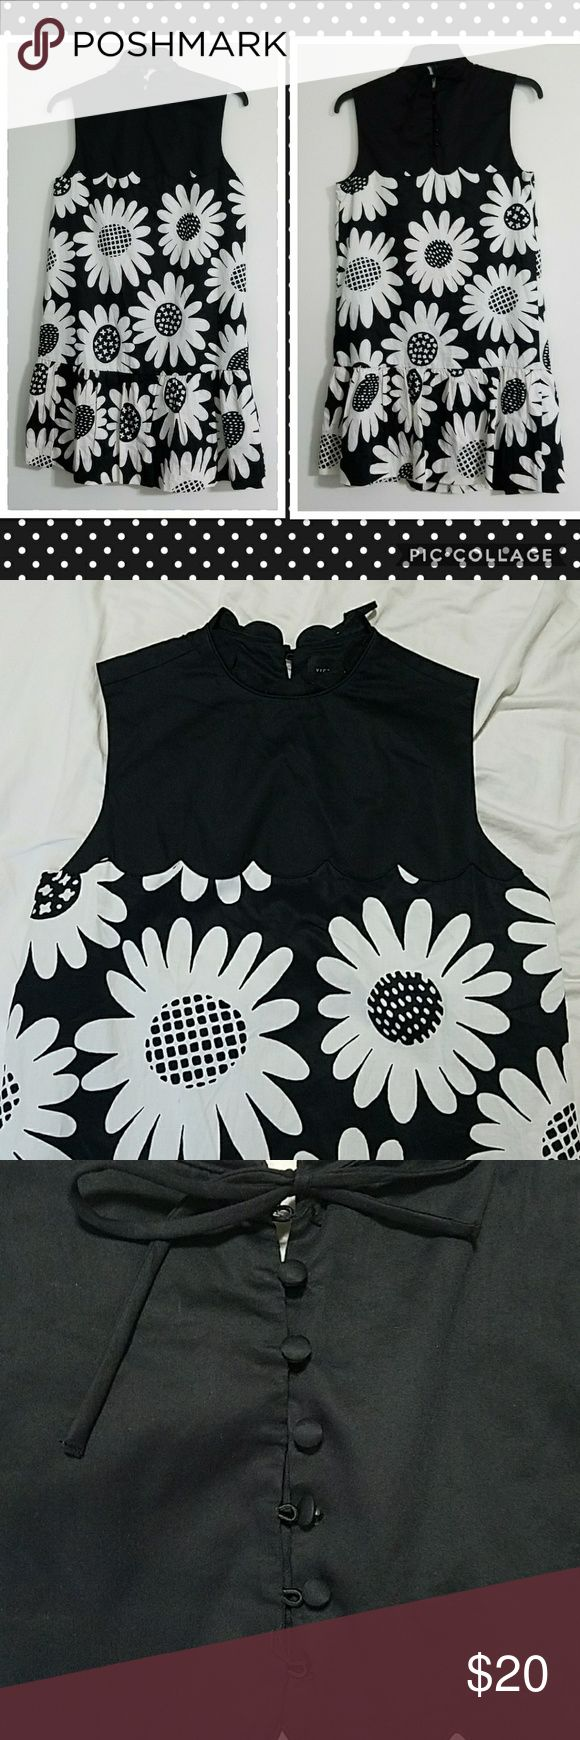 "🌺Black & White Flower Dress NWOT Victoria Beckham for Target Black & White Daisy Drop Waist Scallop Trim Dress  Missing two buttons in back (see photo)   100% polyester Machine washable, gentle cycle  Length: 34.5"" Bust: 17.25"" Inside Lining Hem: 26"" Shoulder: 13.5""  [Model photo taken from ""Fashion Gone Rogue"" Website] Victoria Beckham for Target Dresses"